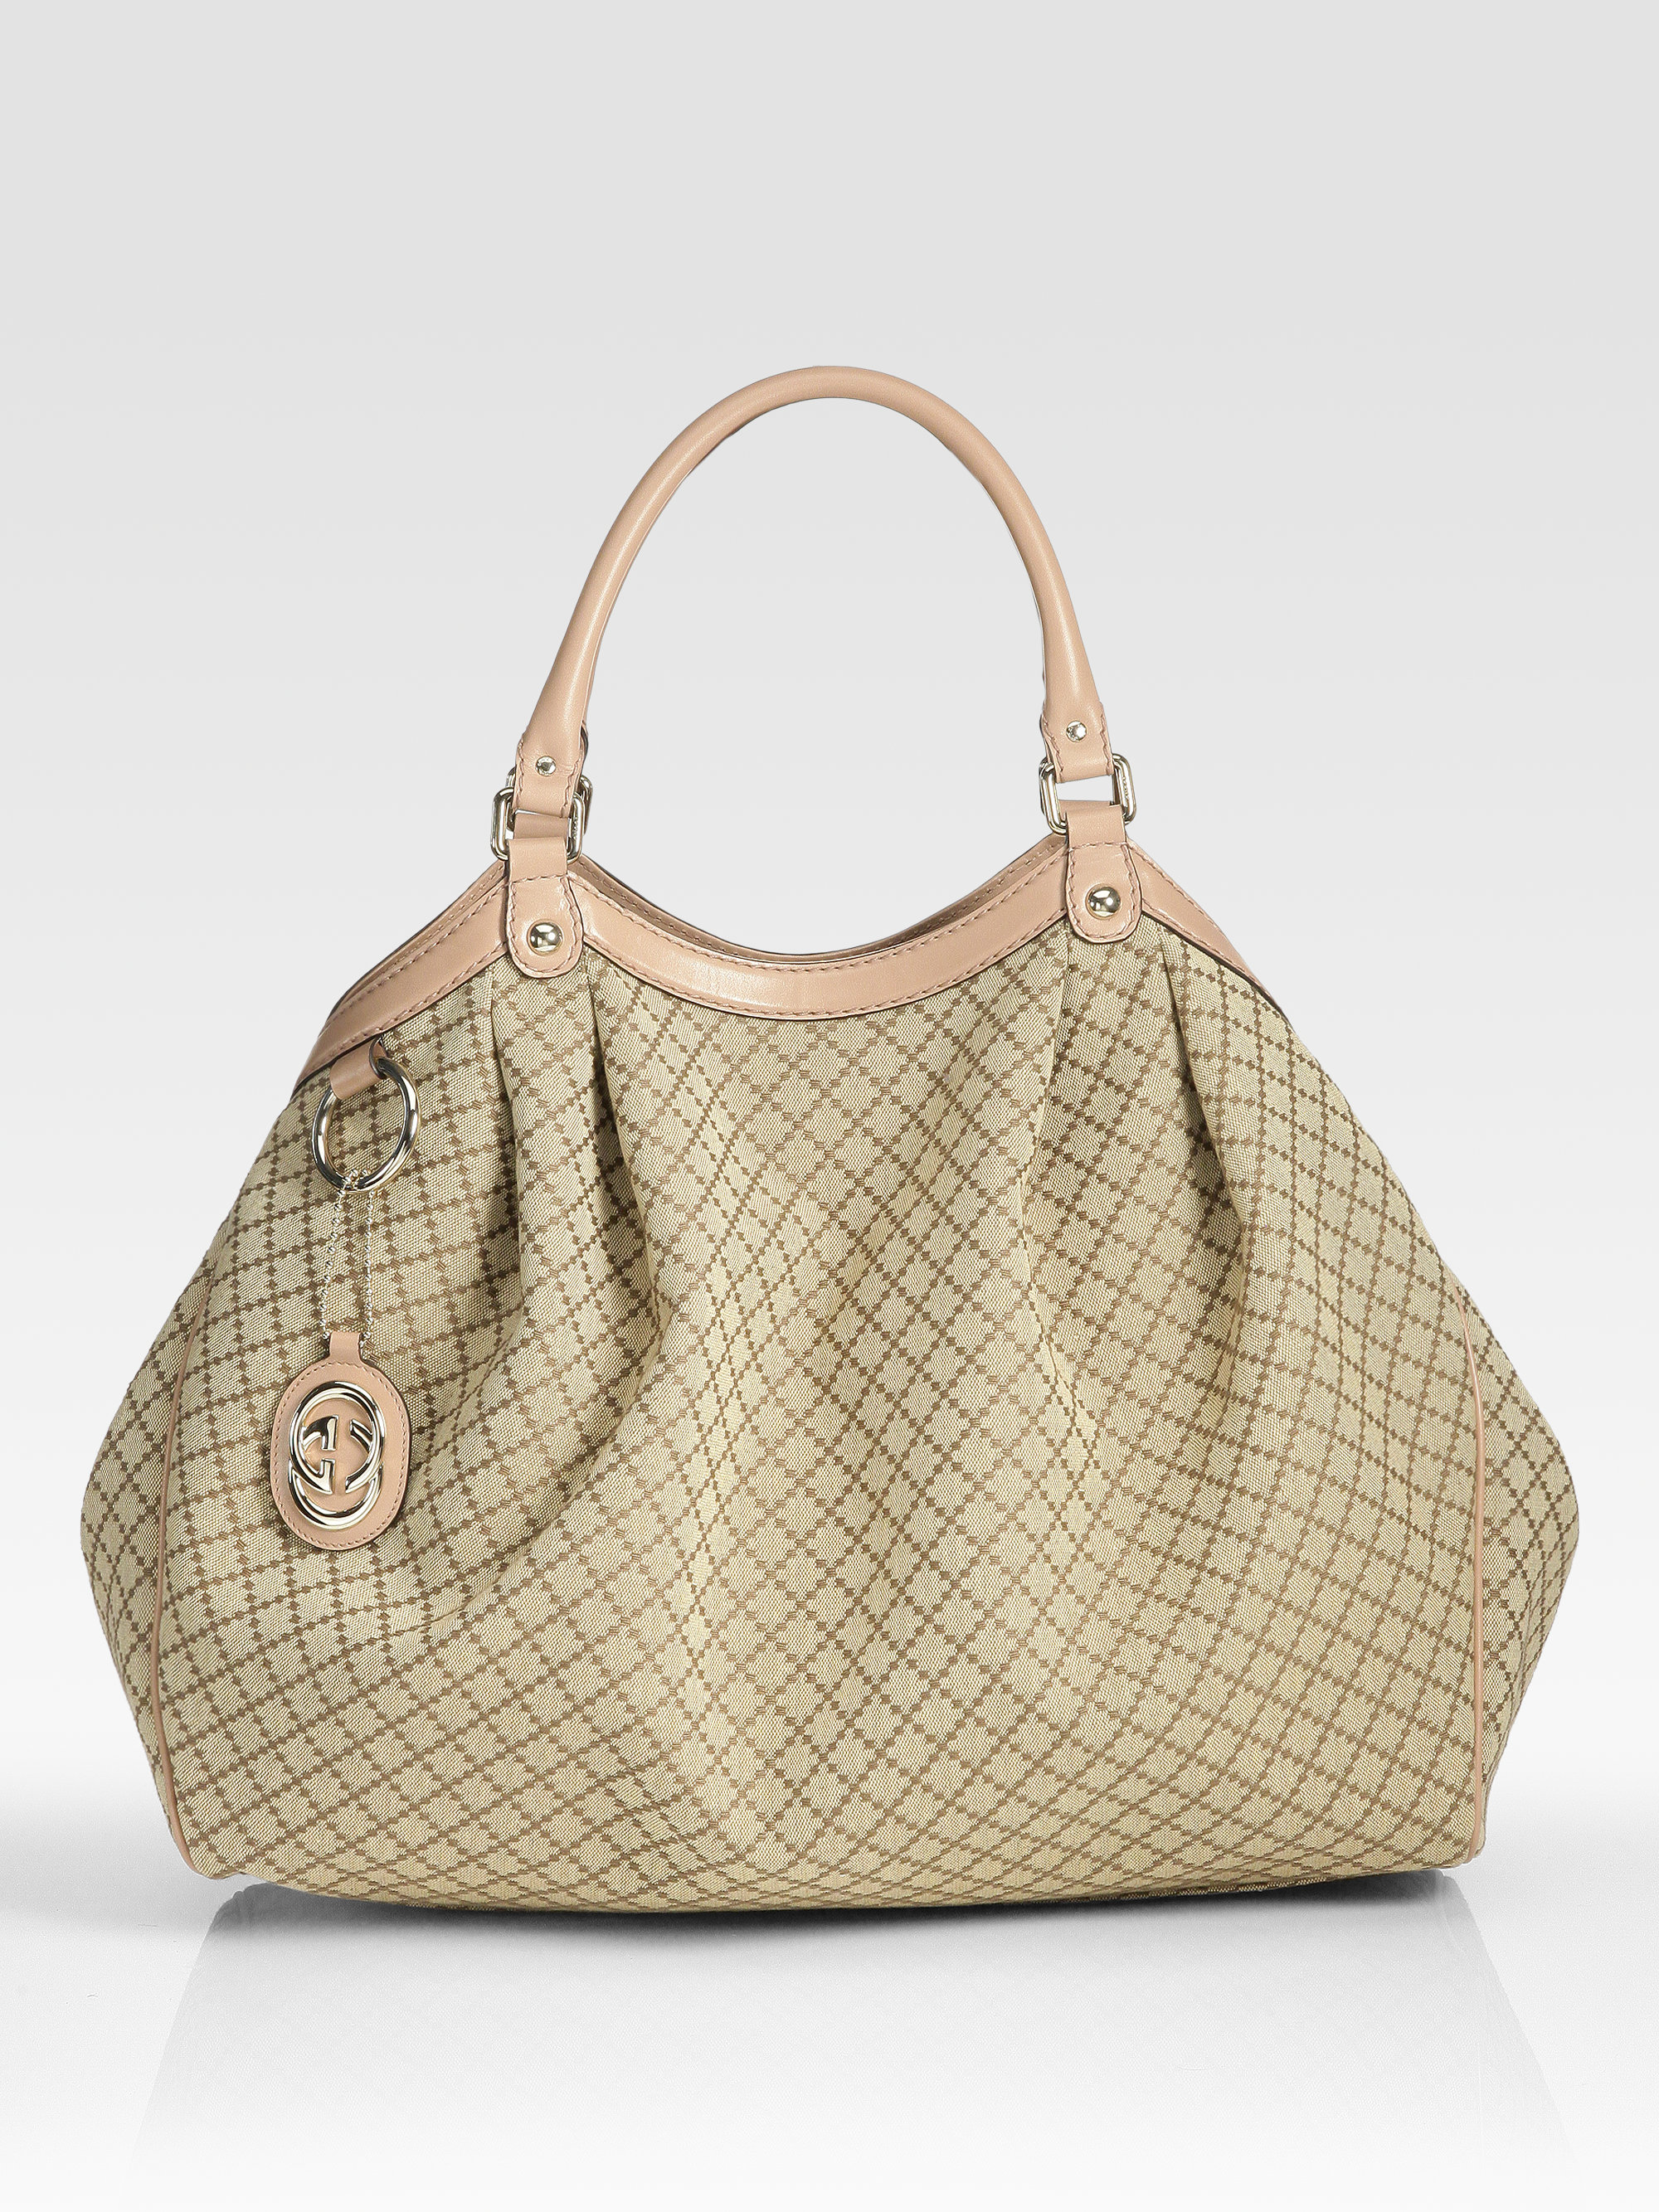 b74f82470e7d Gucci Sukey Large Tote Bags | Stanford Center for Opportunity Policy ...